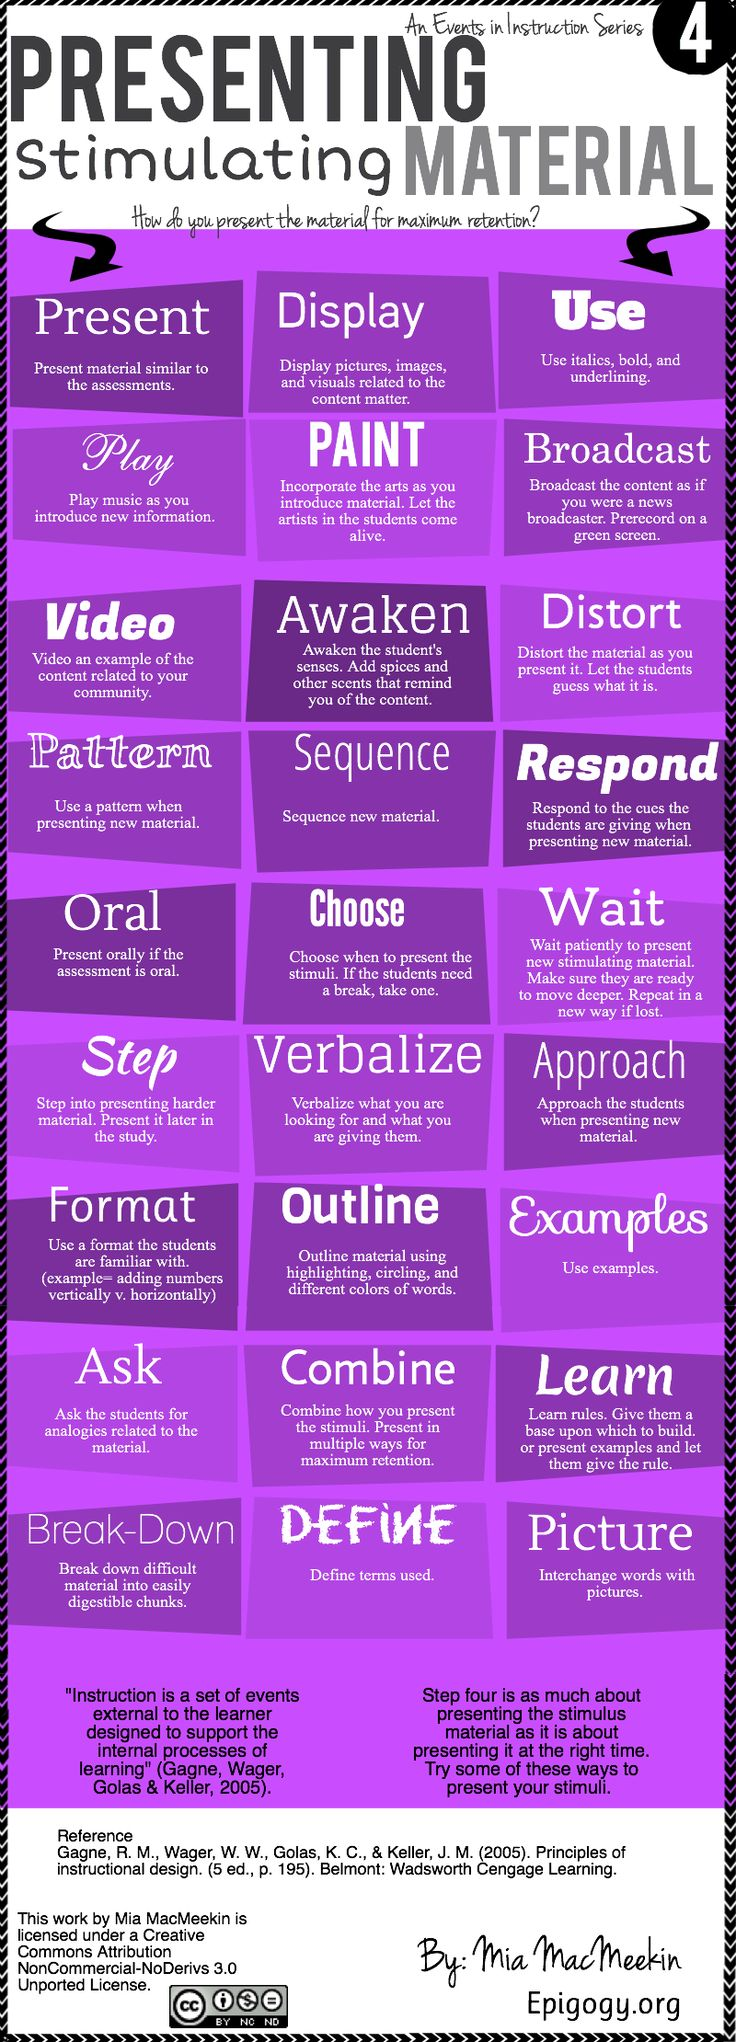 Great infographics on presenting stimulating material to kids for maximum retention of concepts.